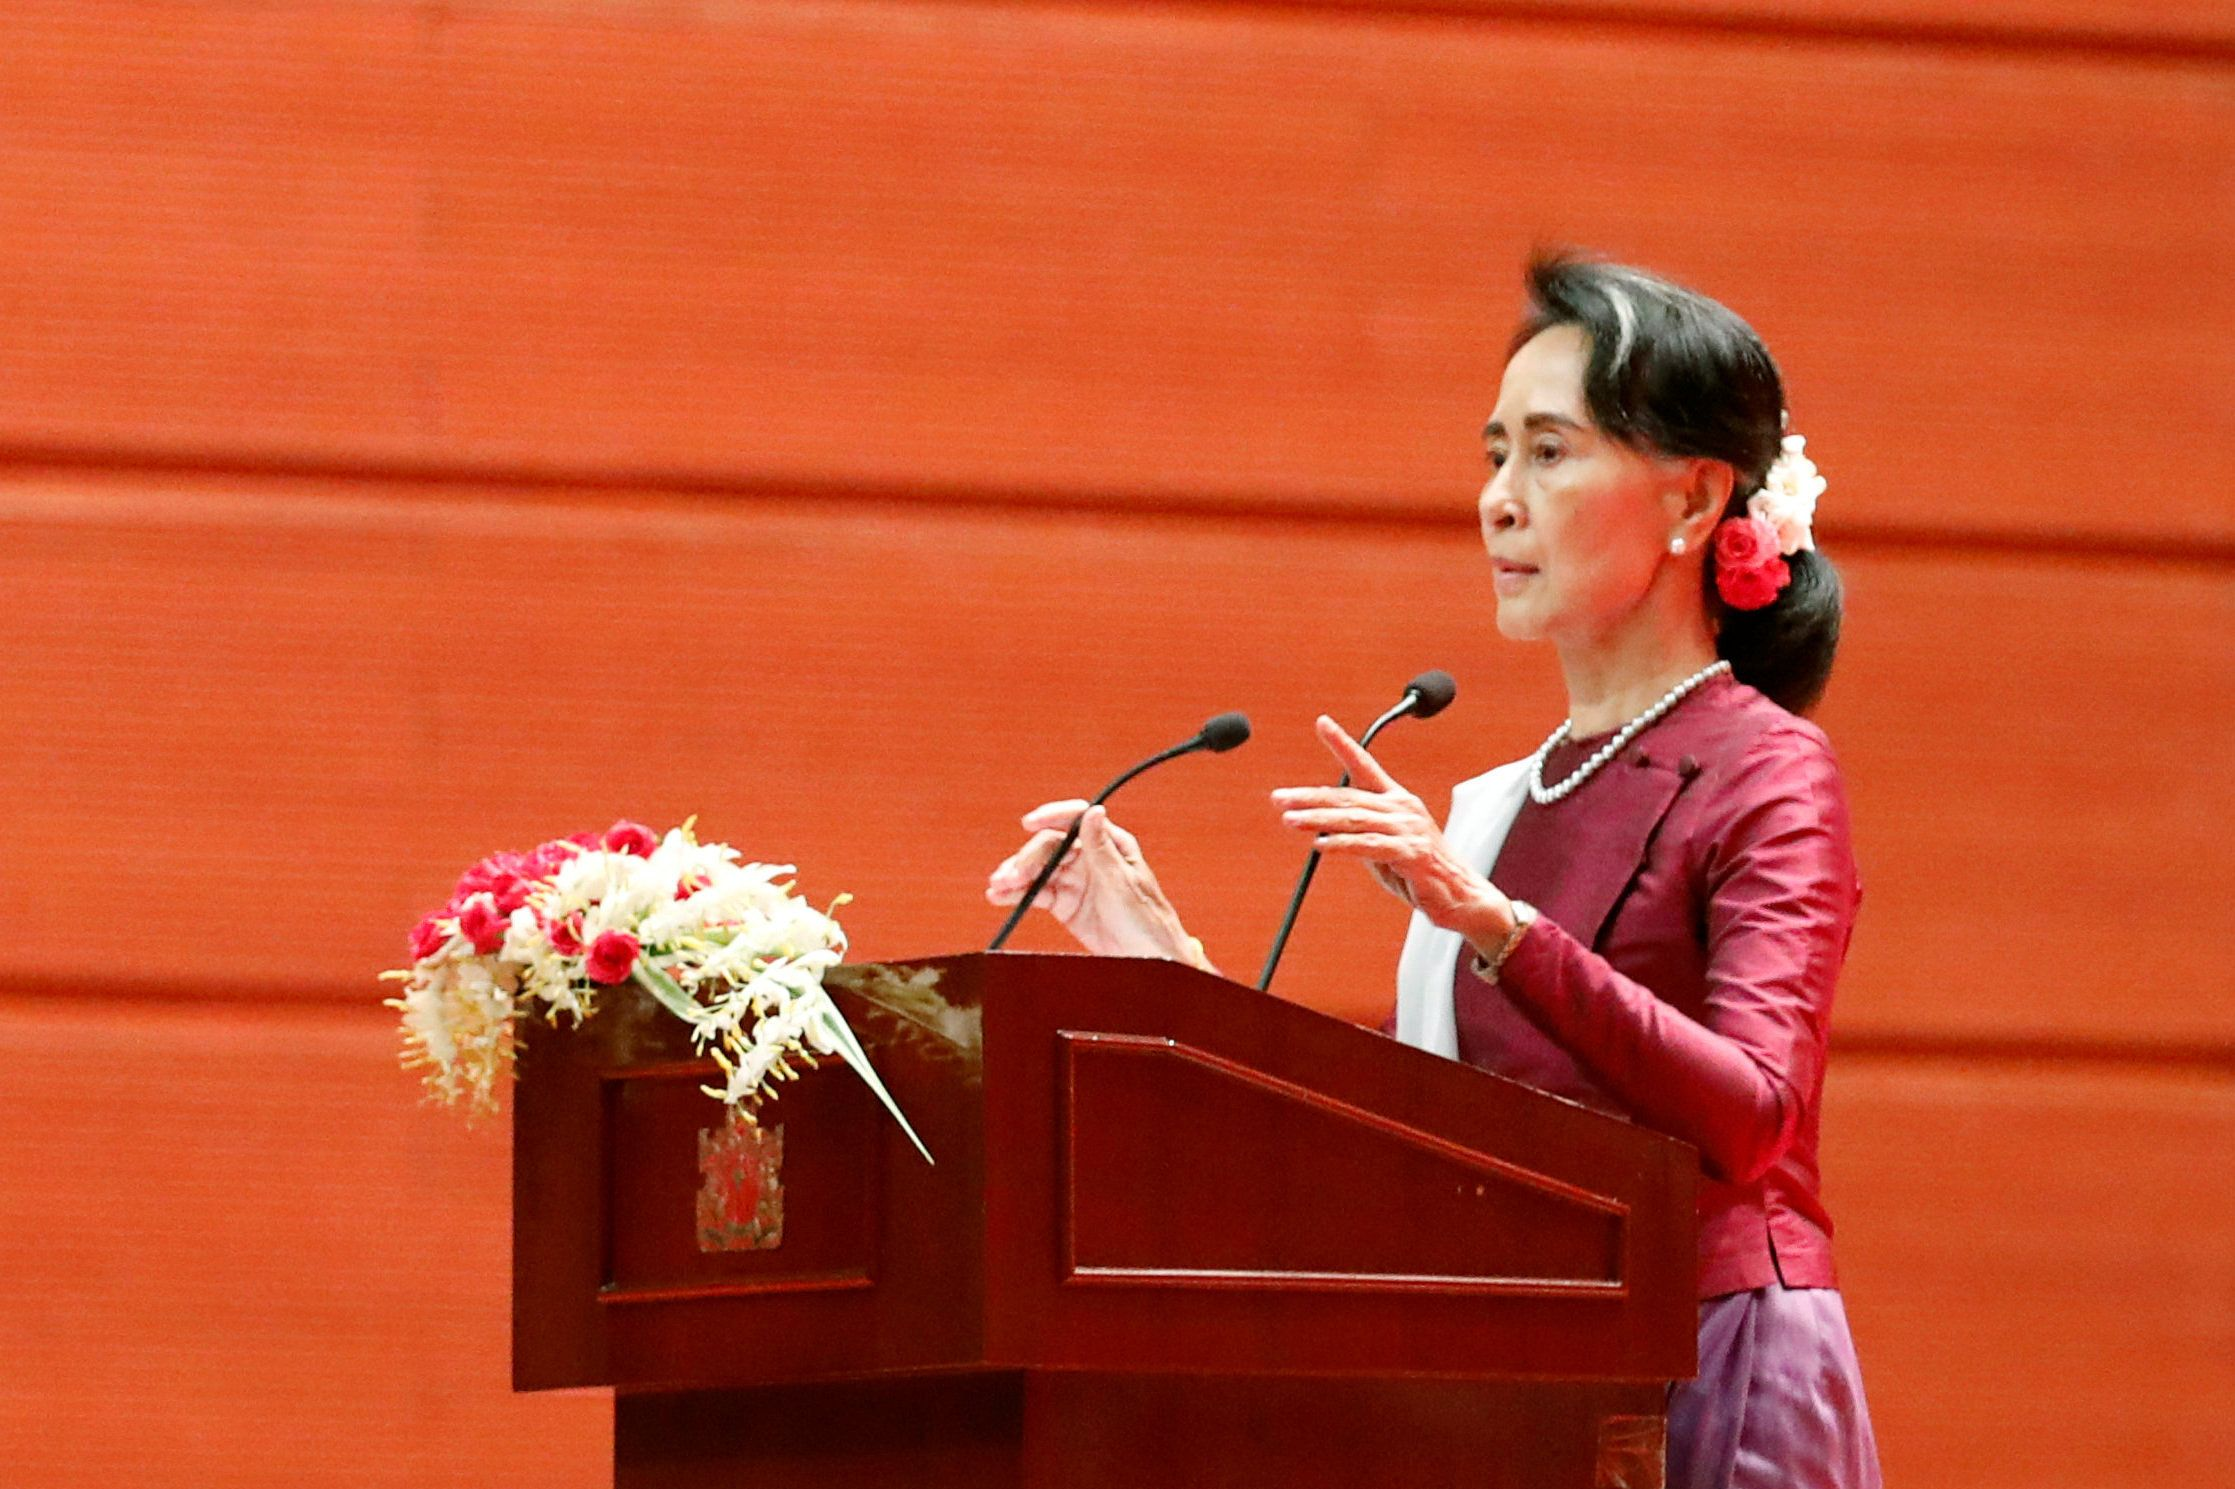 Myanmar State Counselor Aung San Suu Kyi arrives to deliver a speech to the nation over Rakhine and Rohingya situation, in Naypyitaw, Myanmar September 19, 2017. REUTERS/Soe Zeya Tun